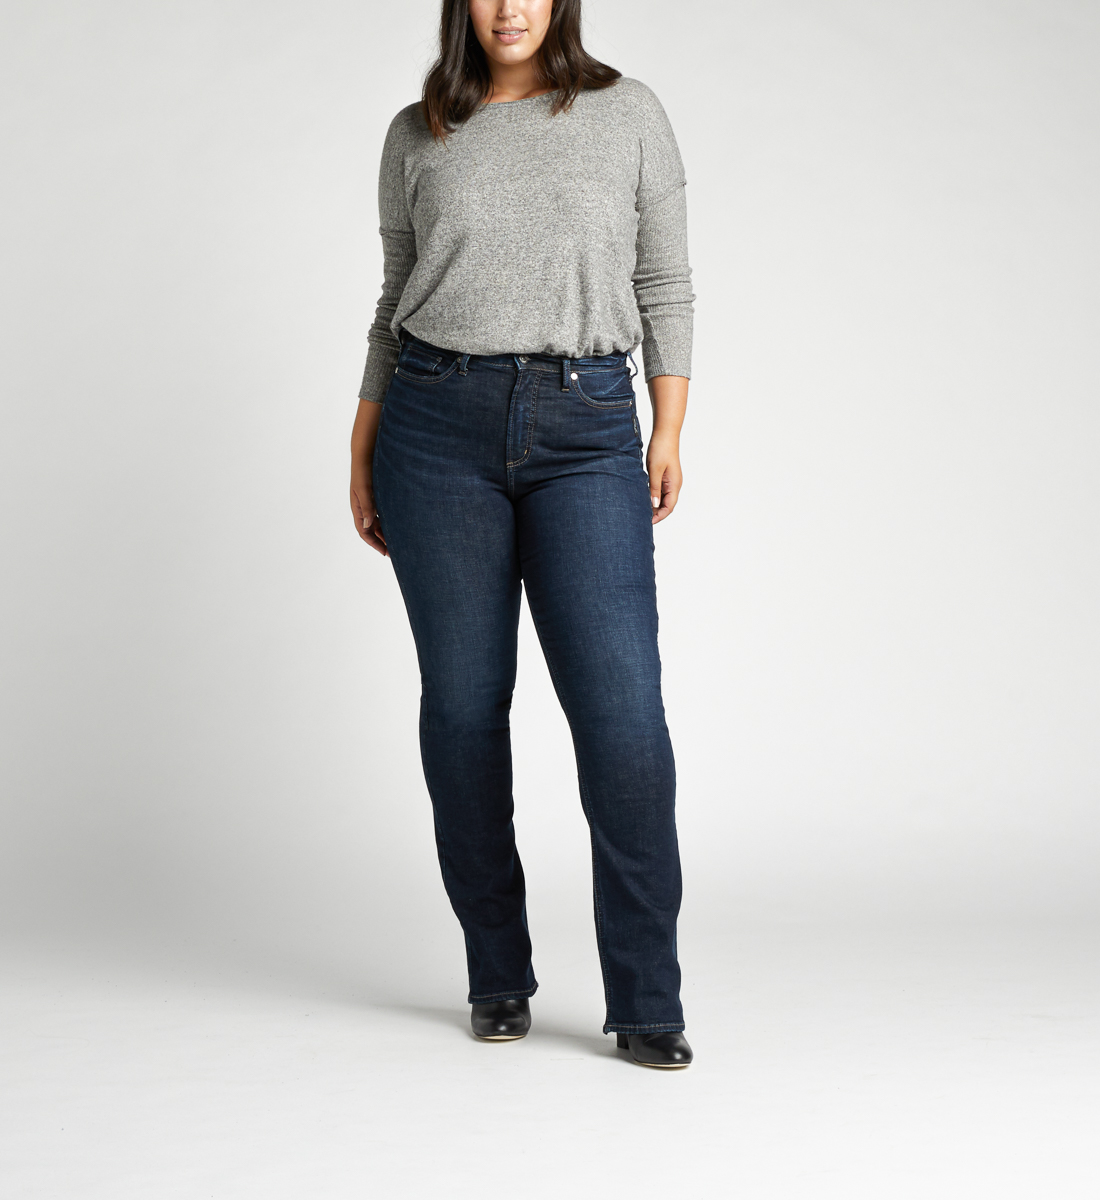 Calley Super High Rise Slim Bootcut Plus Size Jeans Alt Image 1